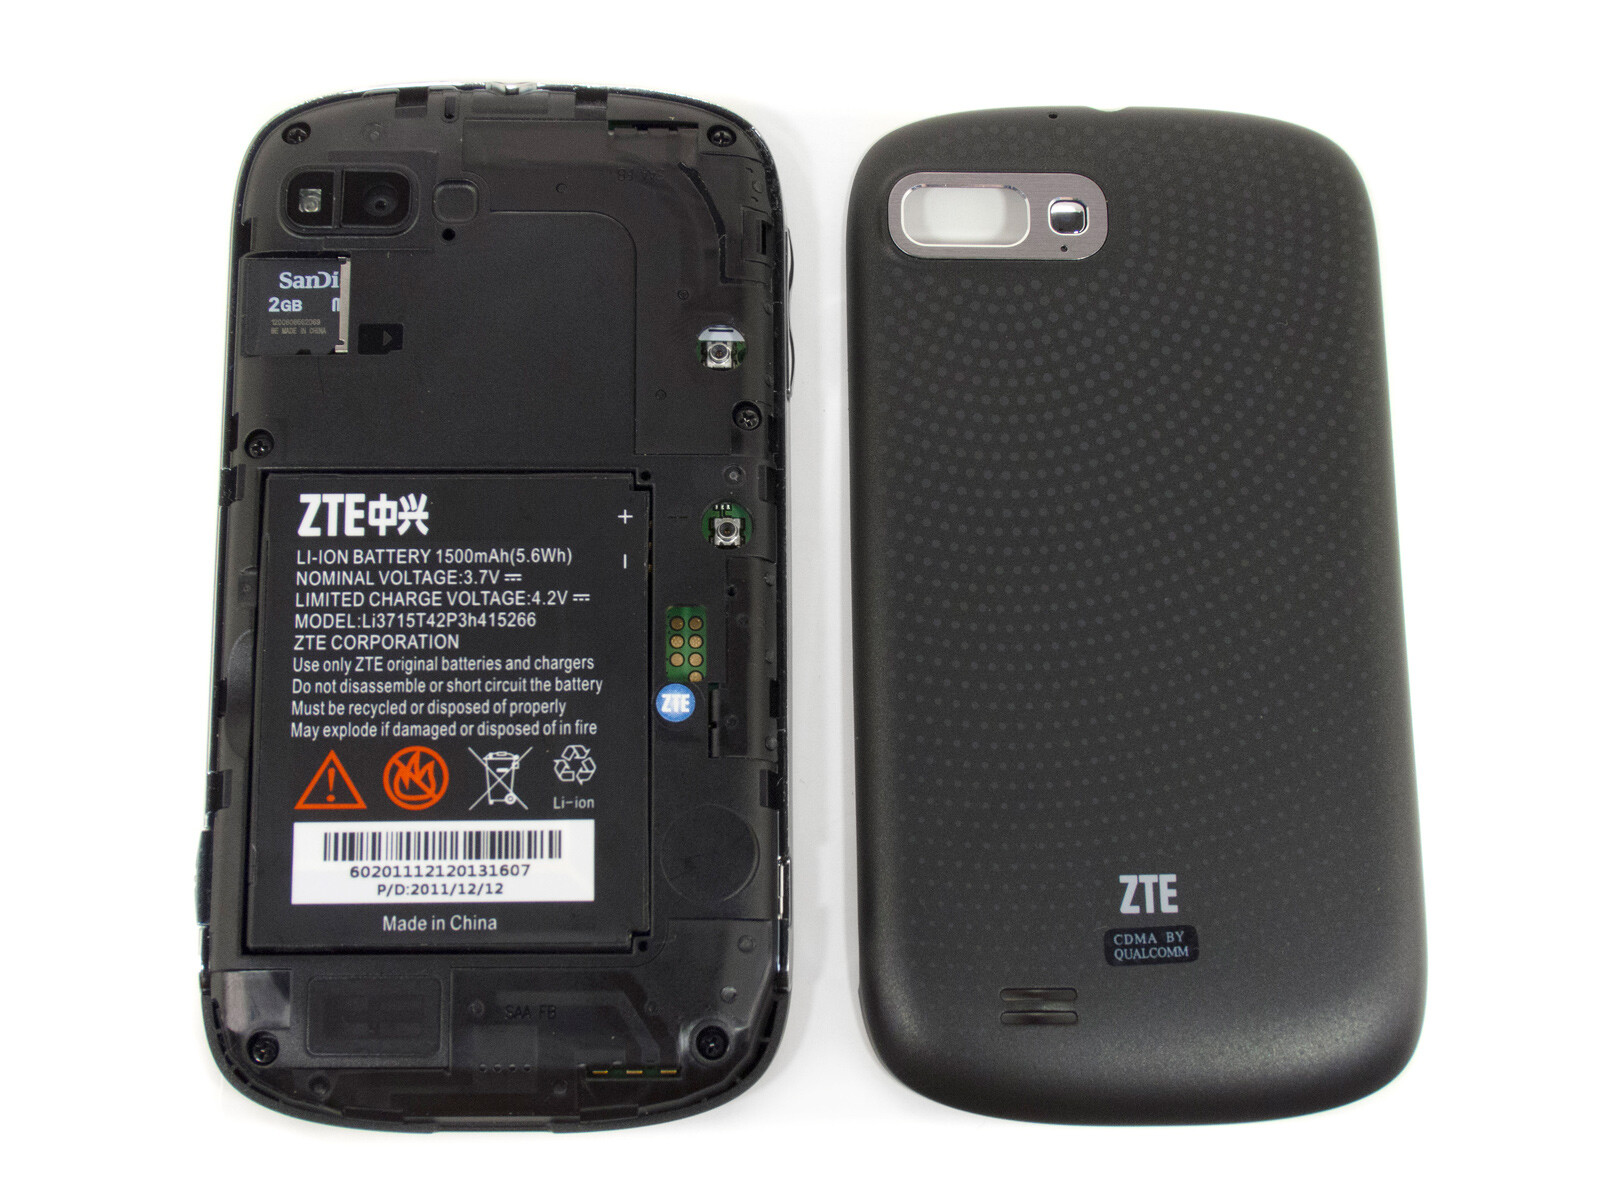 zte mobile wiki they